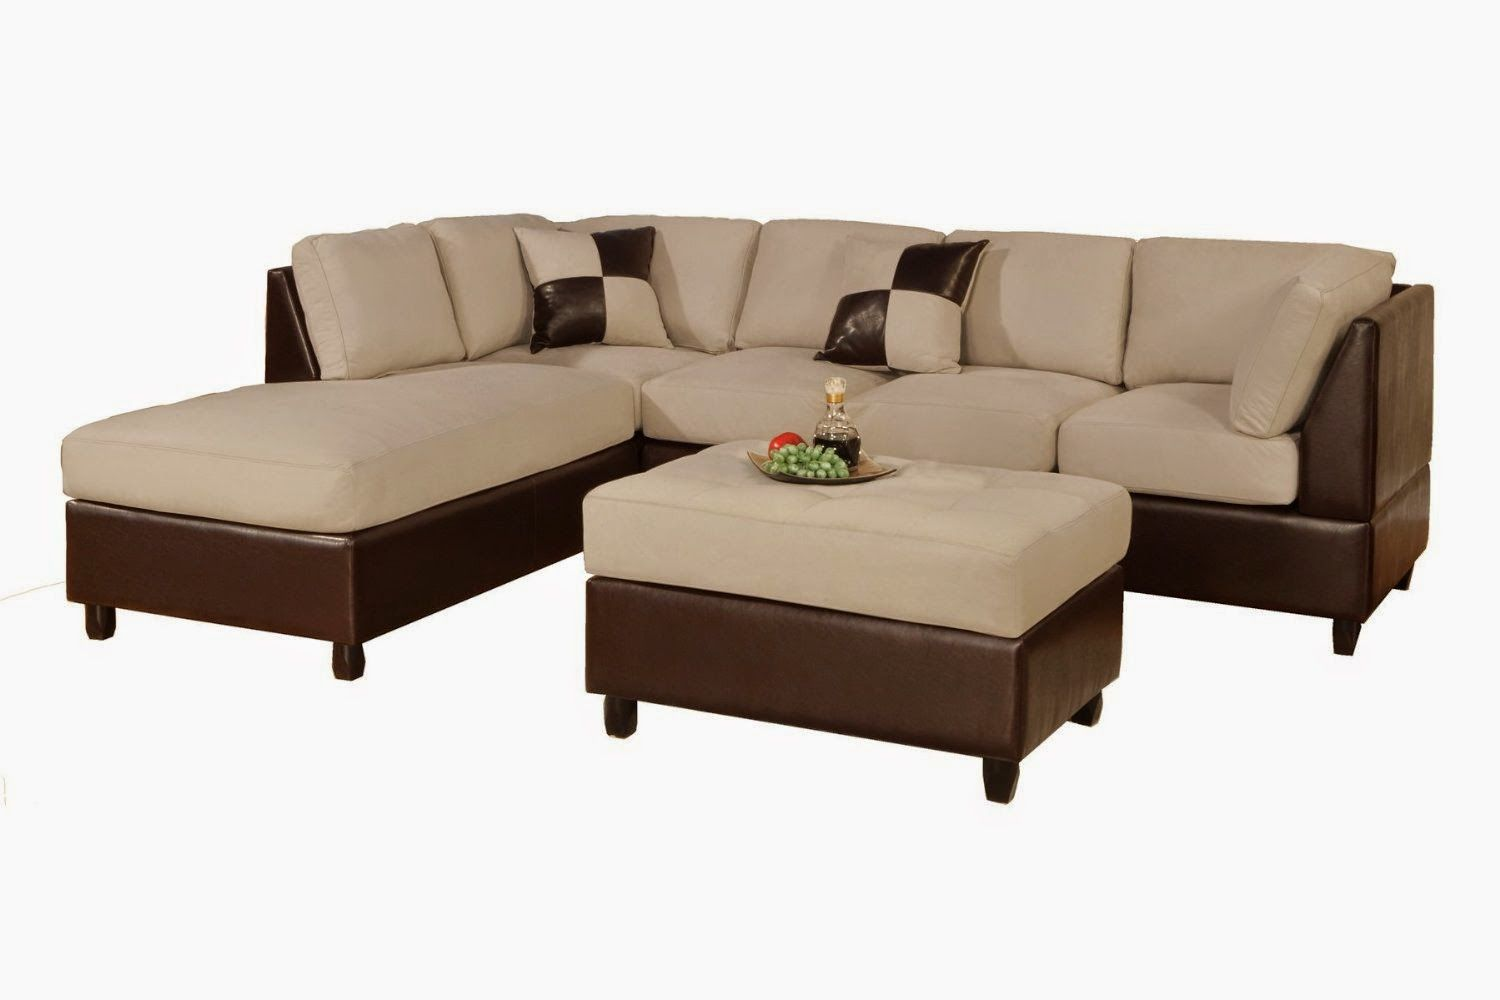 Broyhill Sofa cool Couch And Sofa Set Trend Couch And Sofa Set For Modern Sofa Inspiration